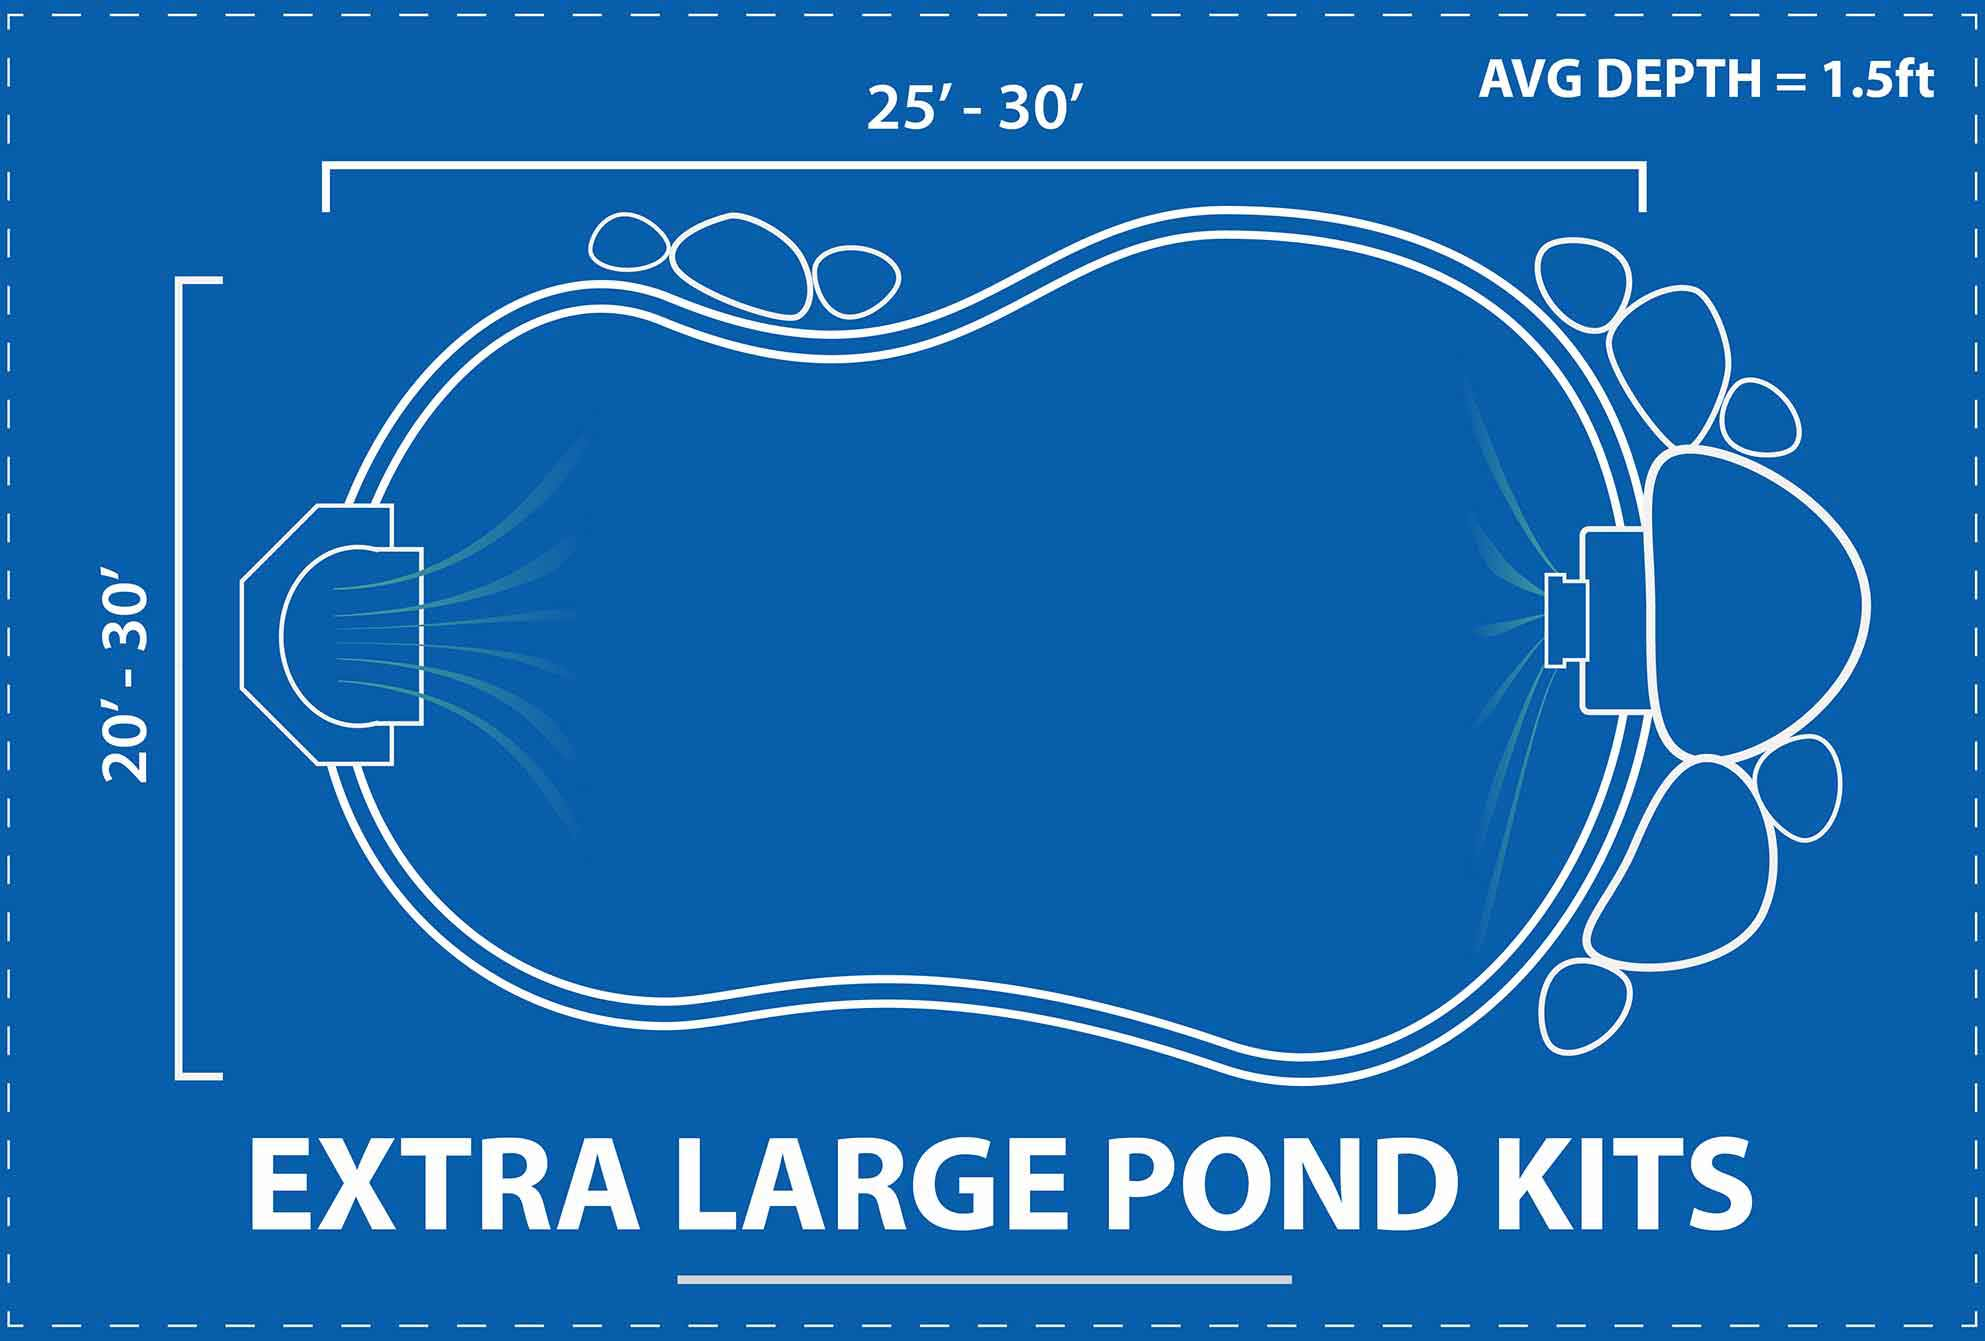 Extra Large Pond Kits